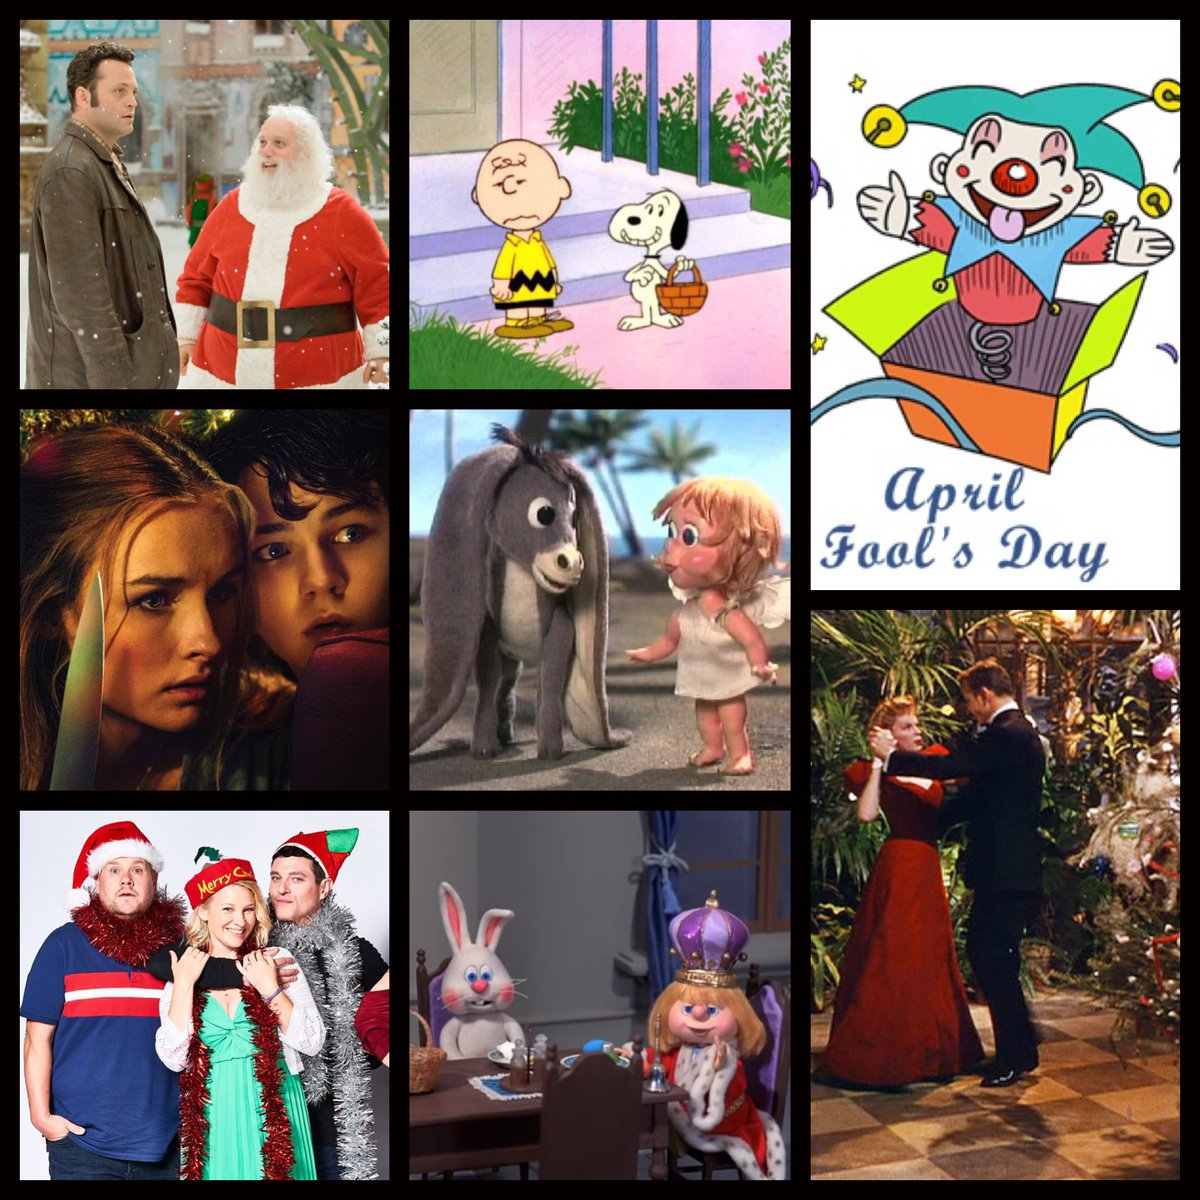 Happy #April, everybody! Three months down, only nine to go! Here's a sneak peak at the month ahead! 🎅🏻🎄🎁 #Christmas #Xmas #FredClaus #ItsTheEasterBeagleCharlieBrown #BetterWatchOut #NestorTheLongEaredChristmasDonkey #MeetMeInStLouis #GavinAndStacey #TheEasterBunnyIsCominToTown